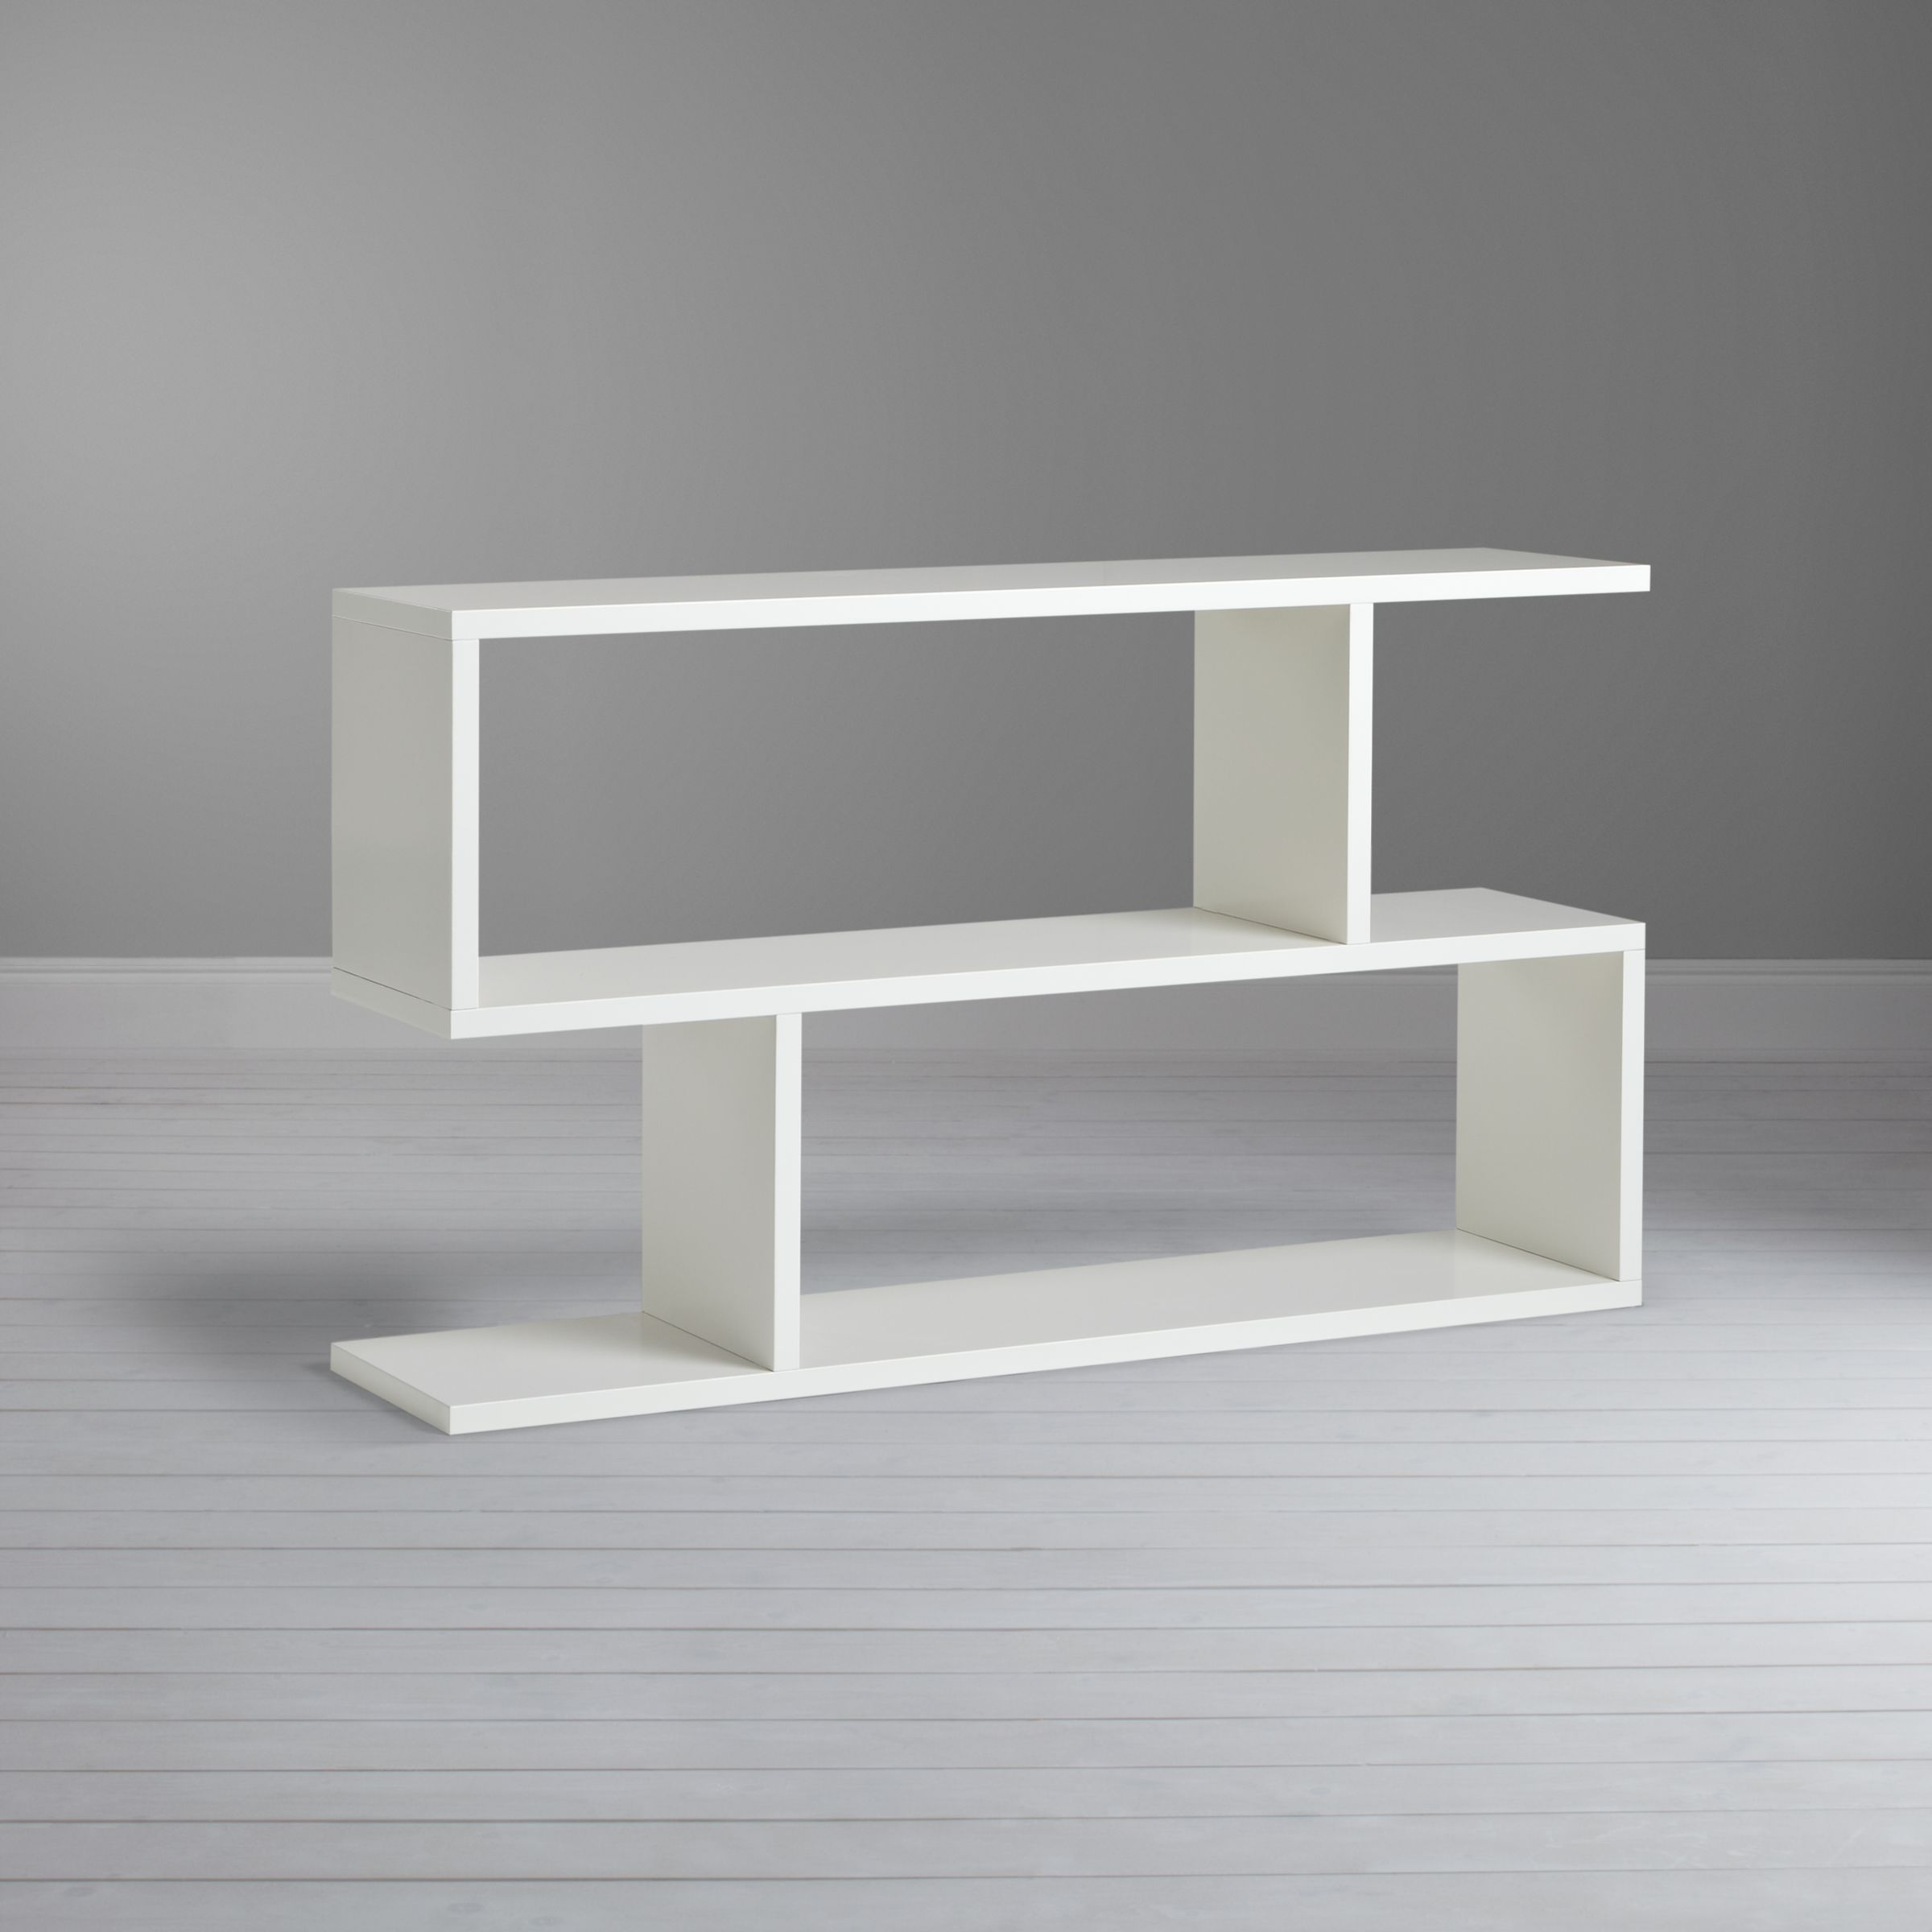 Content by Conran Balance Console Table/Low Shelving, White at John Lewis